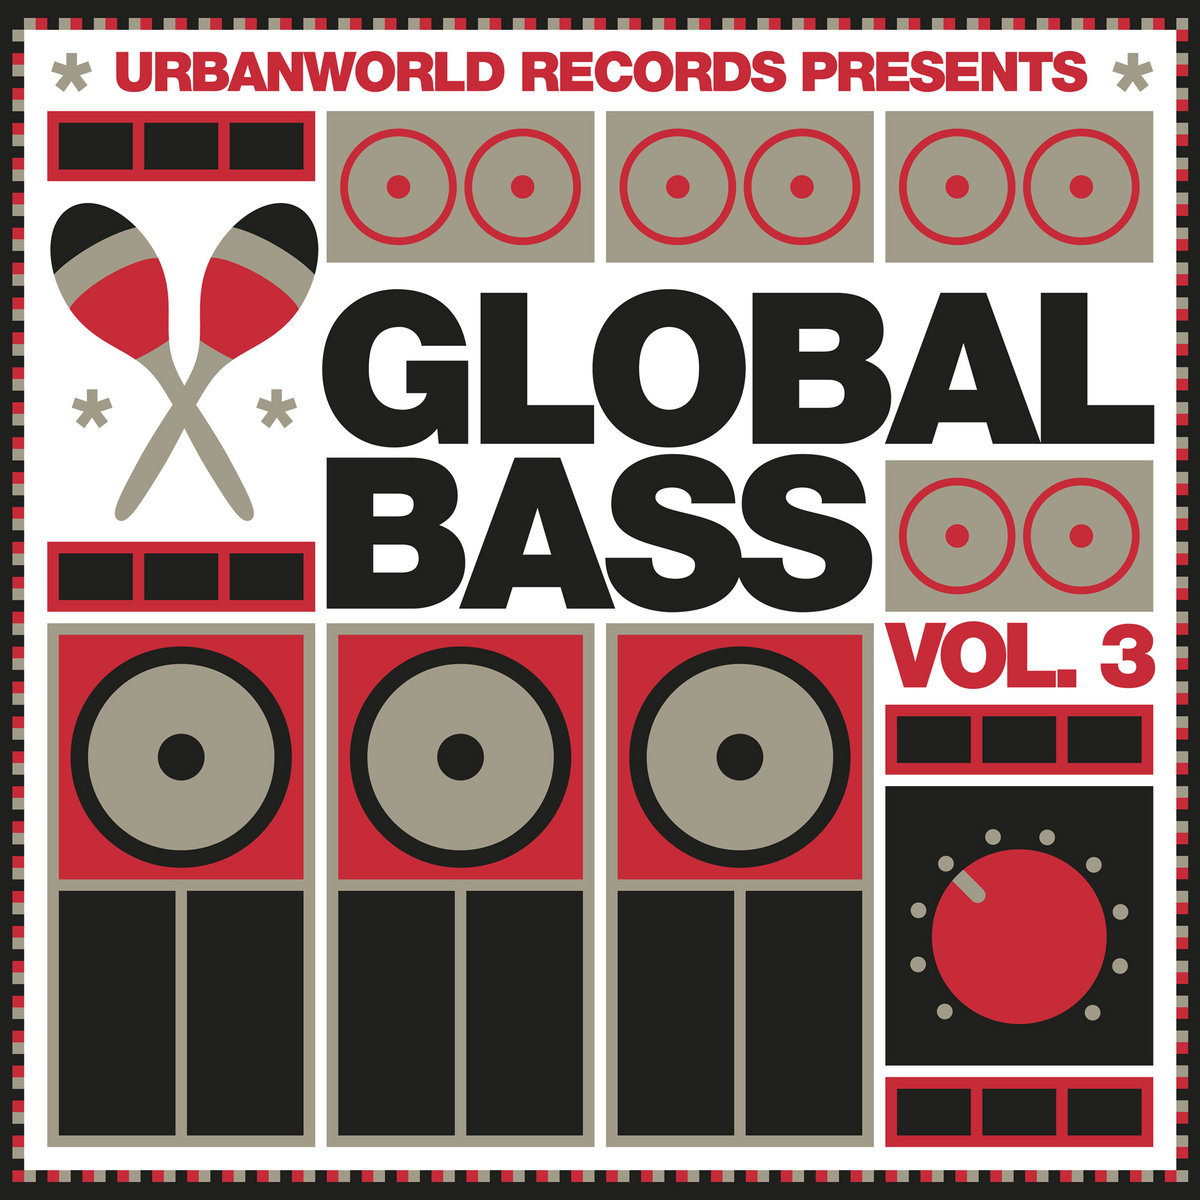 Global Bass Vol  3 | UrbanWorld Records